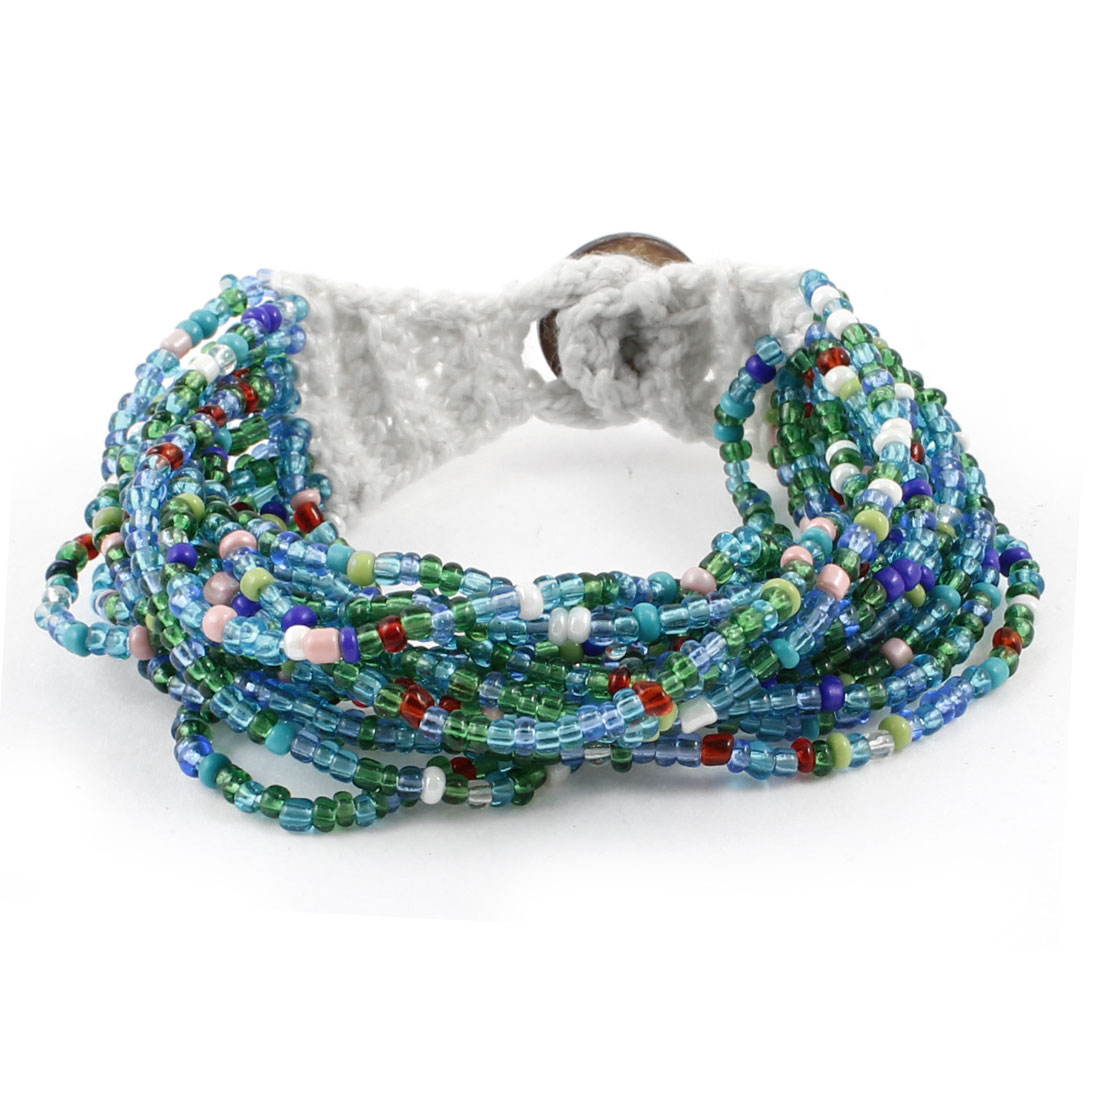 Knitting Detailing Button Closure Multilayer Beaded Bracelet for Women